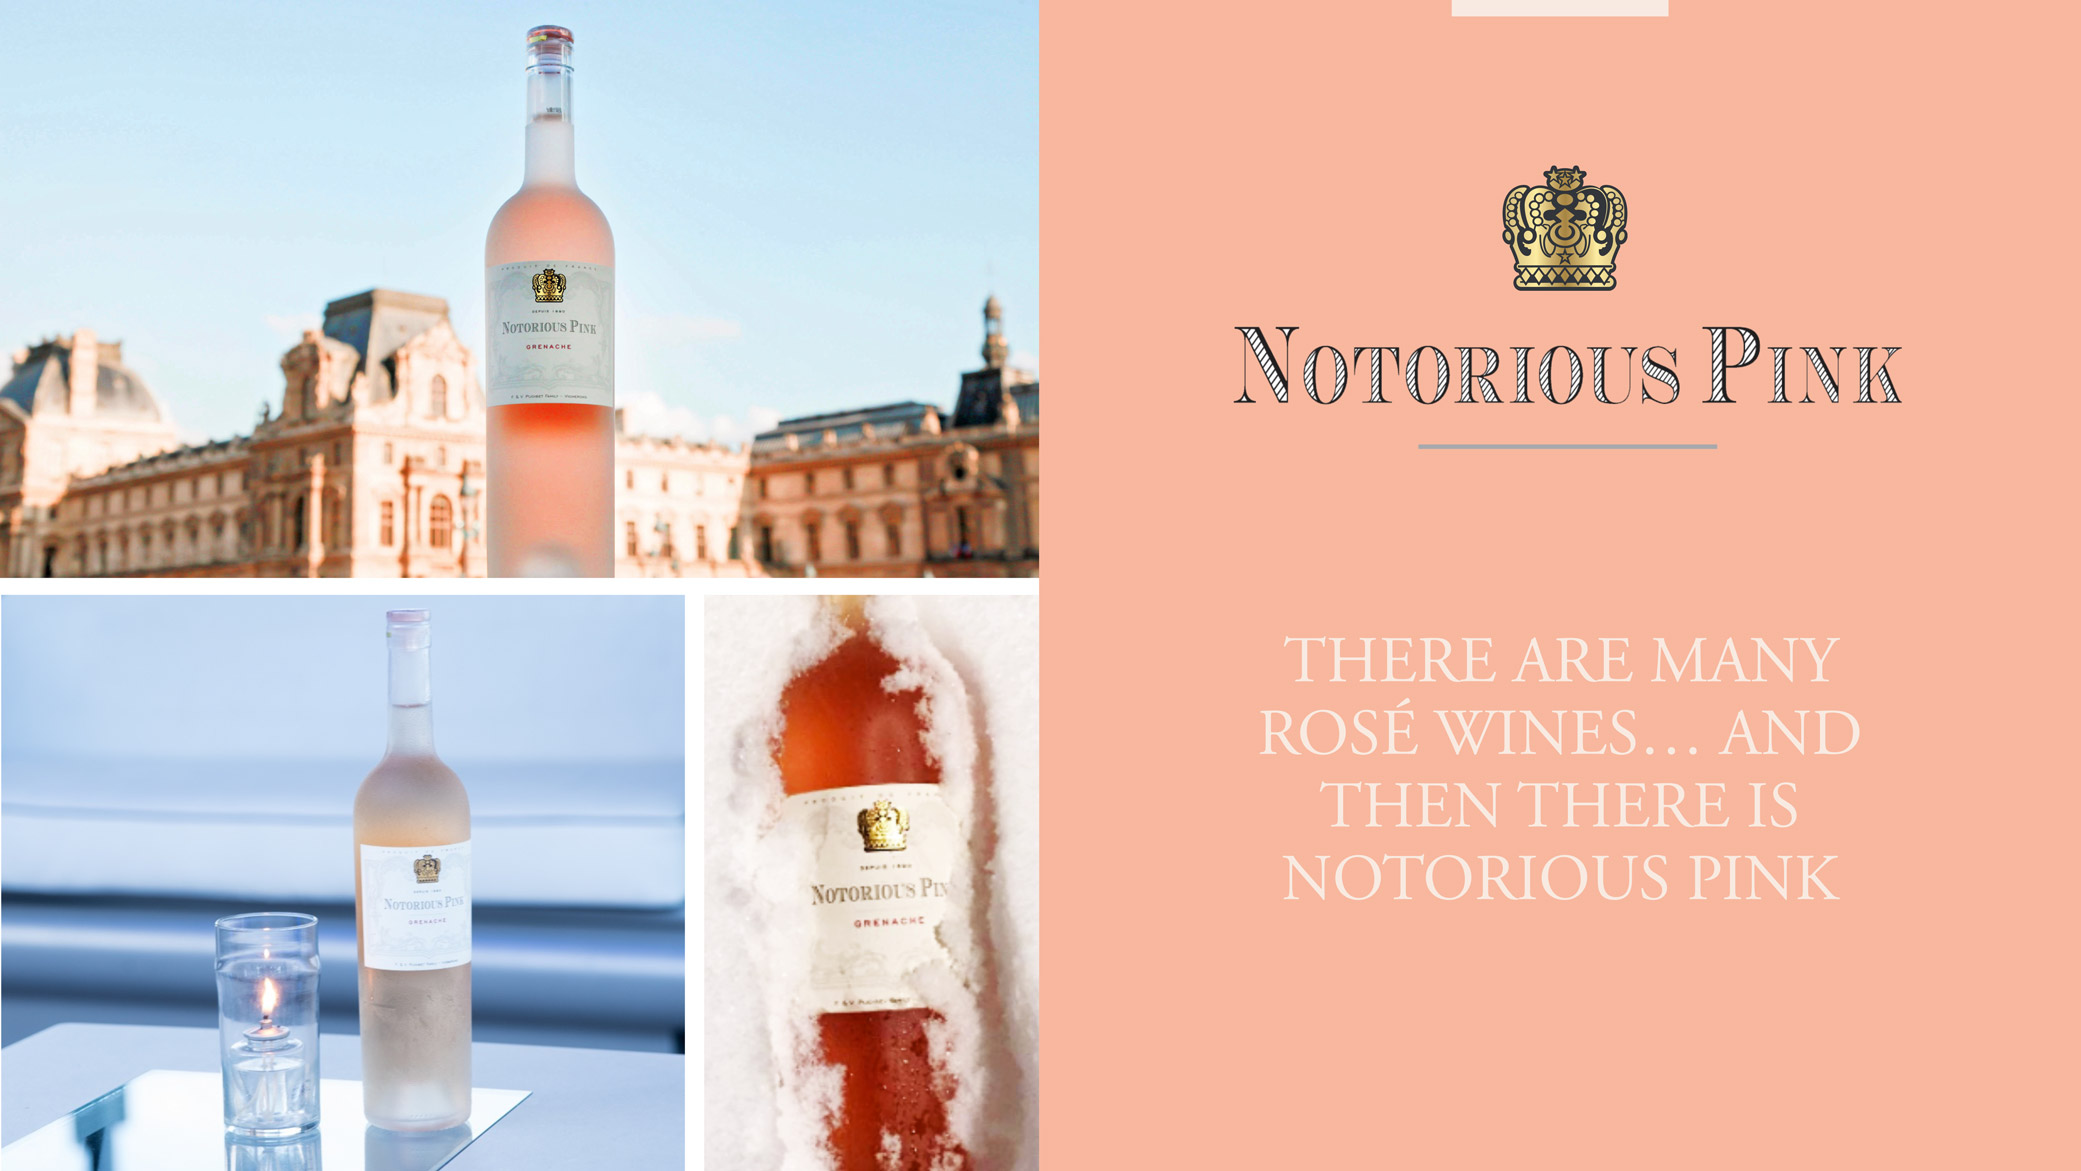 """Notorious Pink 'Global Brand' campaign with featured Rosé and """"There are many rosé wines, and then there's Notorious Pink."""""""